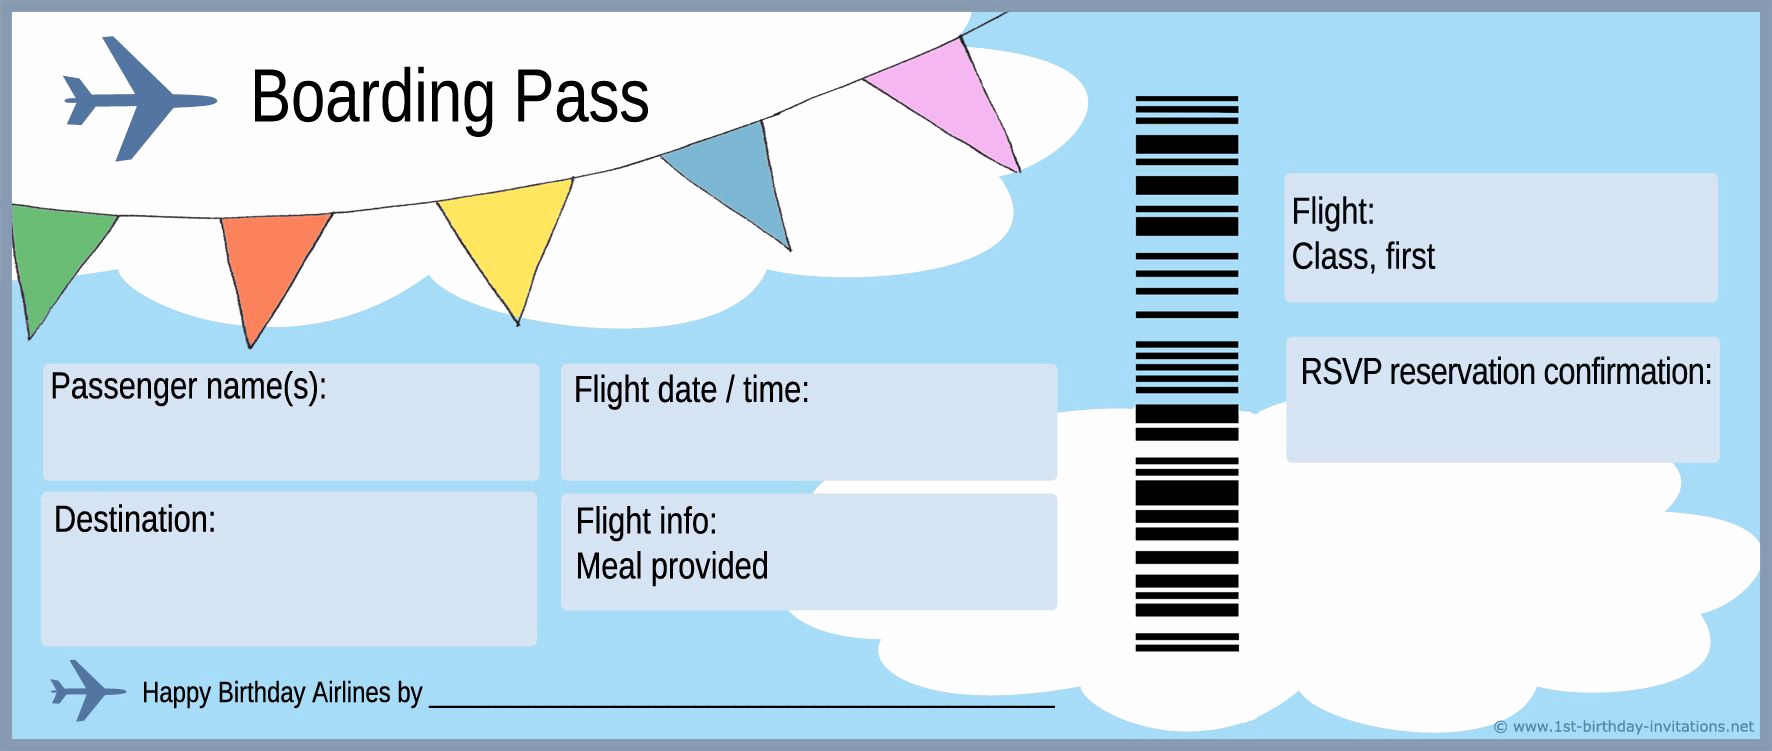 Boarding Pass Invitation Template New Free Boarding Pass Template Google Search